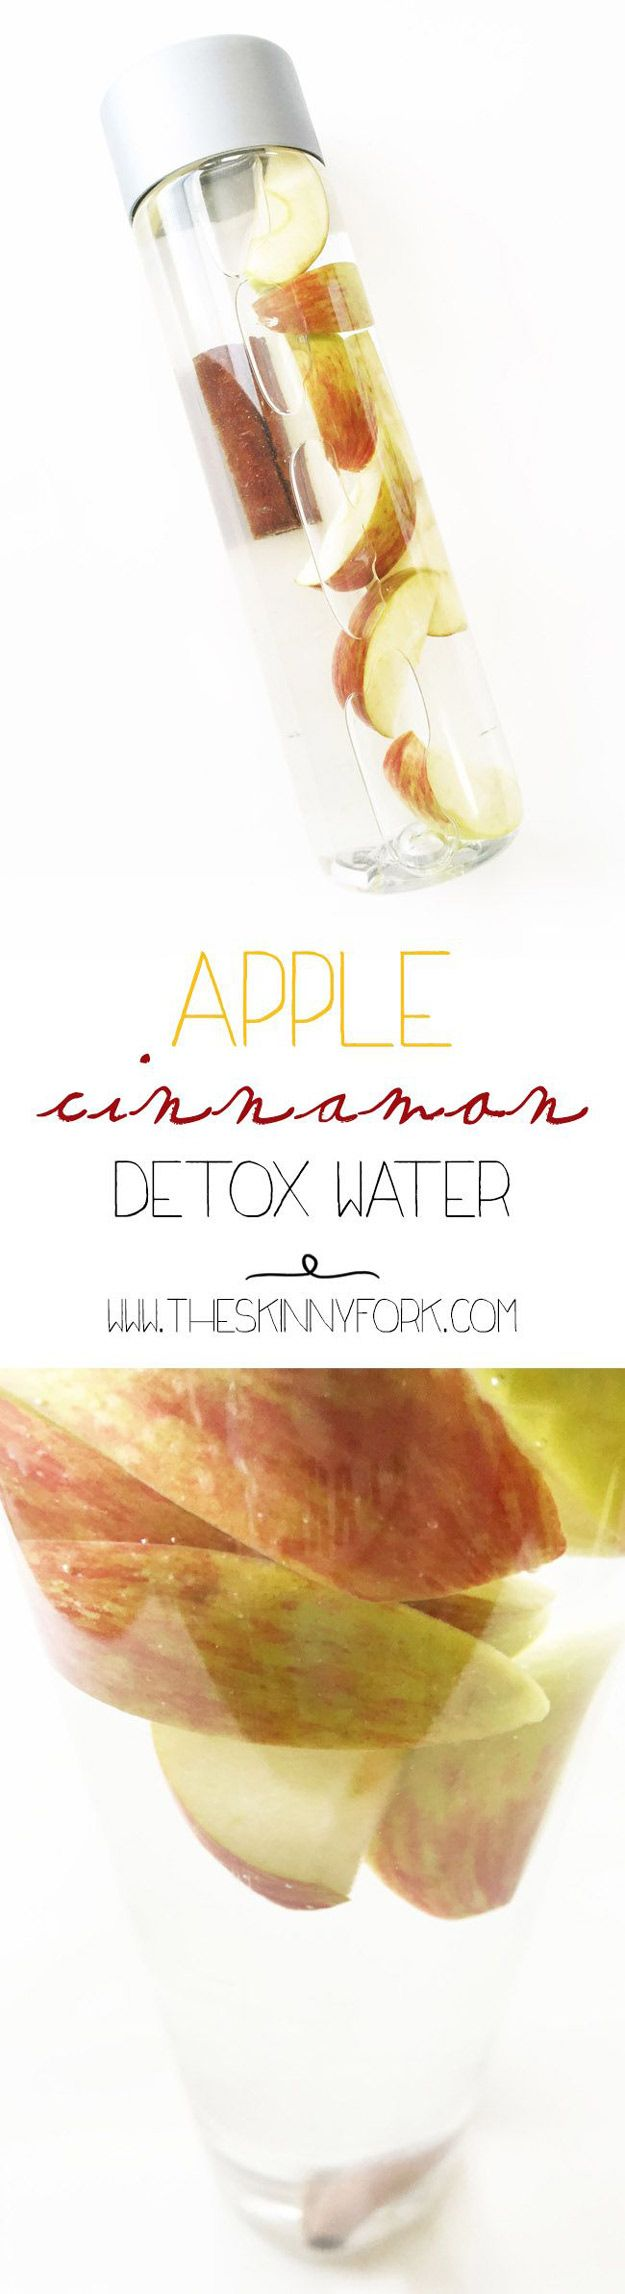 31 Detox Water Recipes for Drinks To Cleanse Skin and Body.  Easy to Make Waters and Tea Promote Health, Diet and Support Weightloss | Apple Cinnamon Detox Water  Recipe